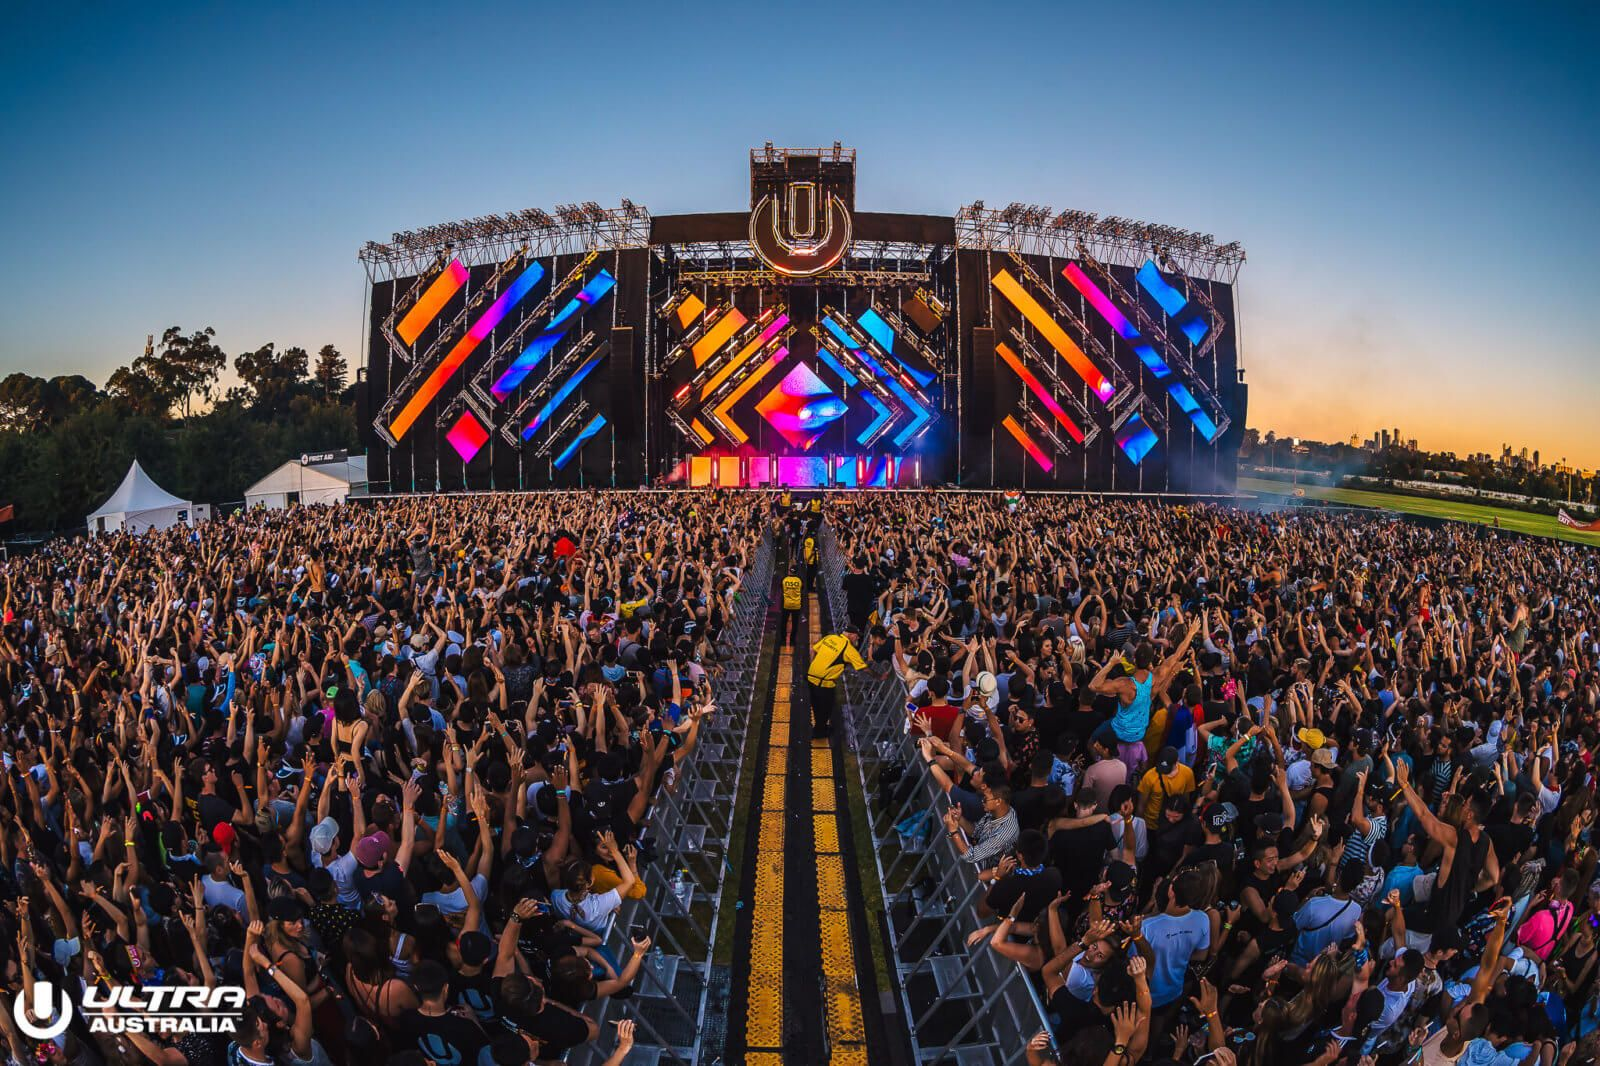 Ultra Australia Announces 2020 Phase 1 Lineup With Images